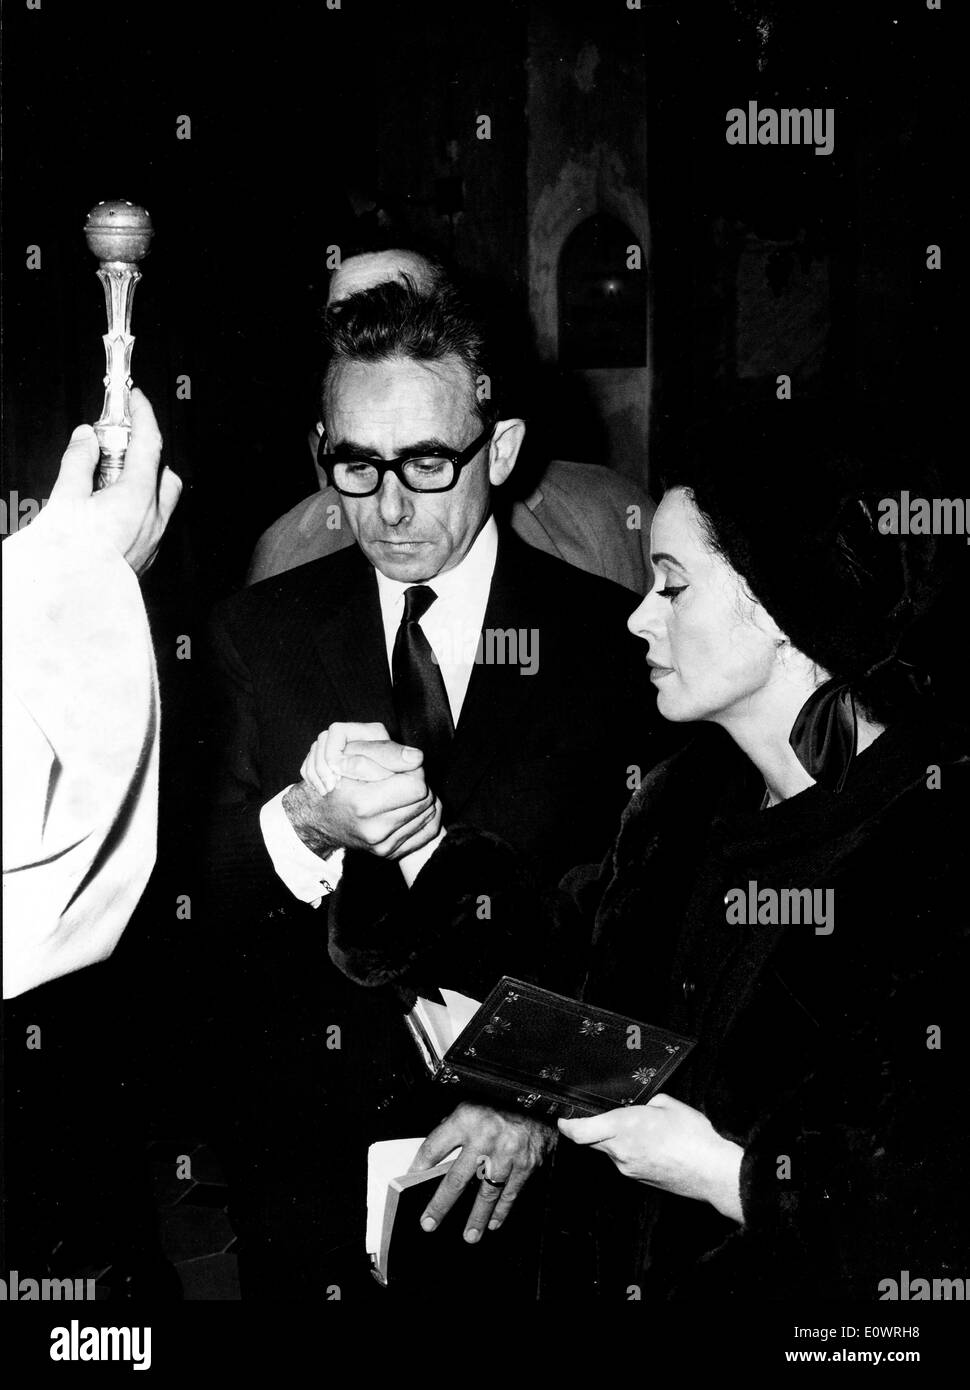 Nov 31, 1963 - La Colle-sur-Loup, France - (File Photo) HENRI-GEORGES CLOUZOT, was a French screenwtiter, director, - Stock Image